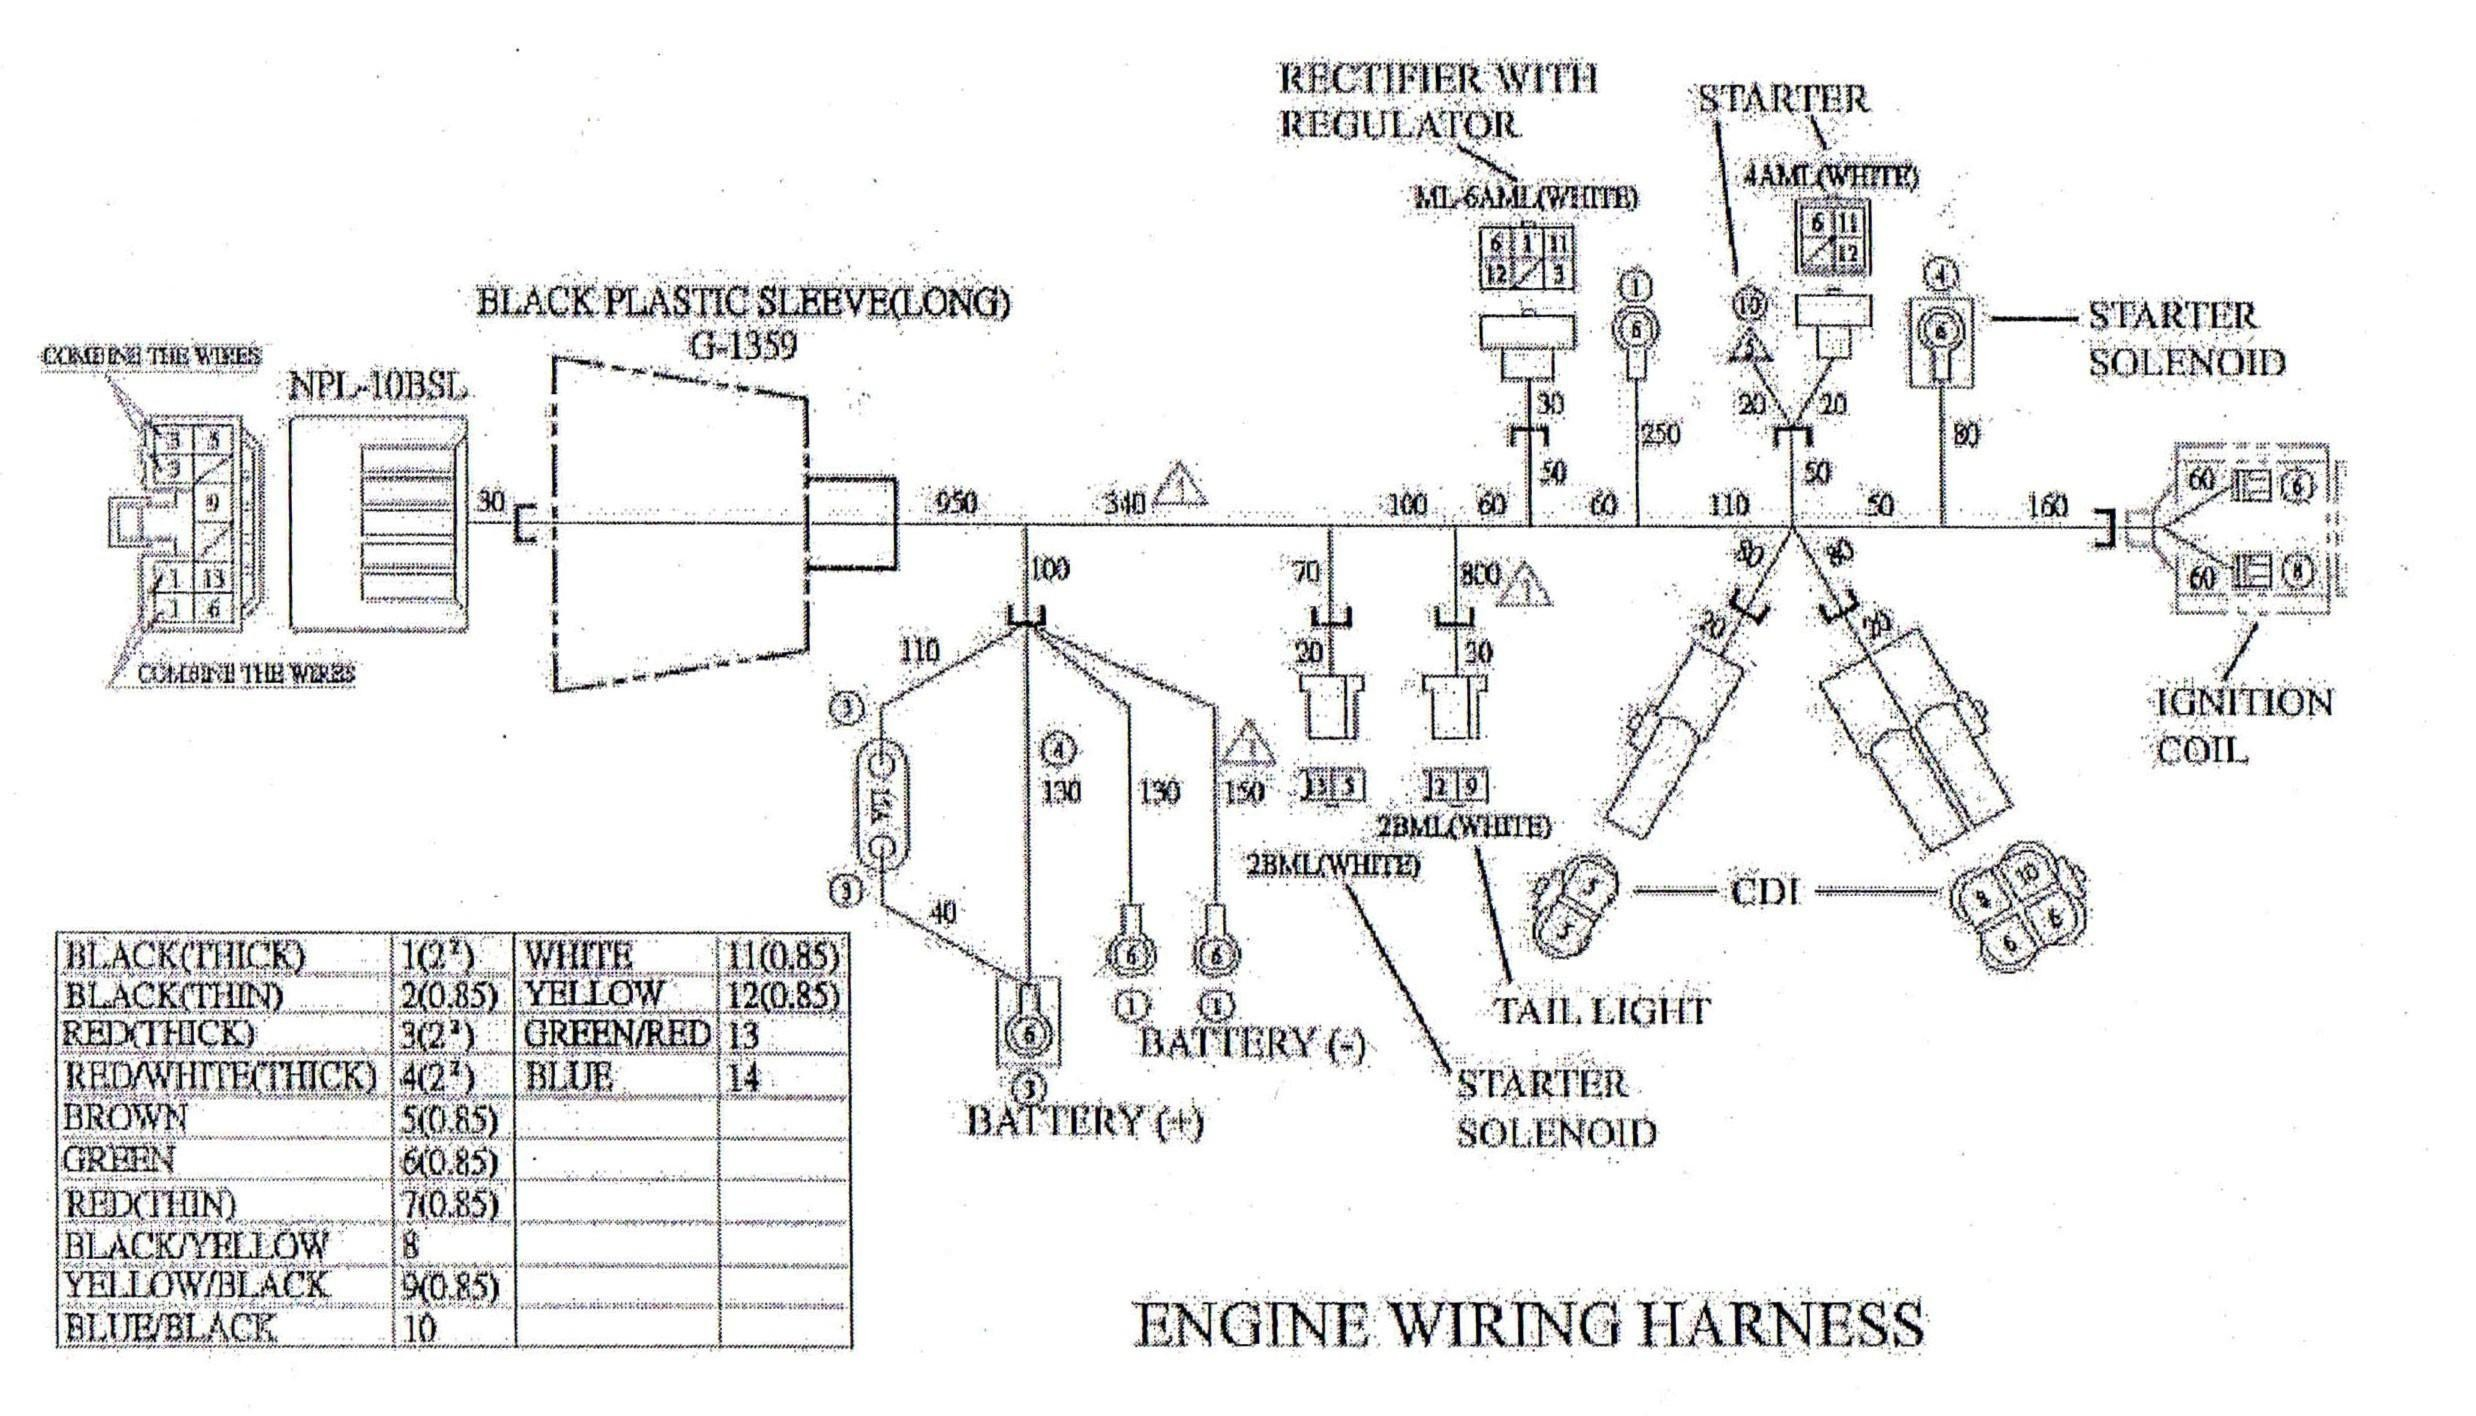 Tecumseh Engines Wiring Diagram 7hp Coil Green Engine Working Best Ford Starter Of 2476x1416